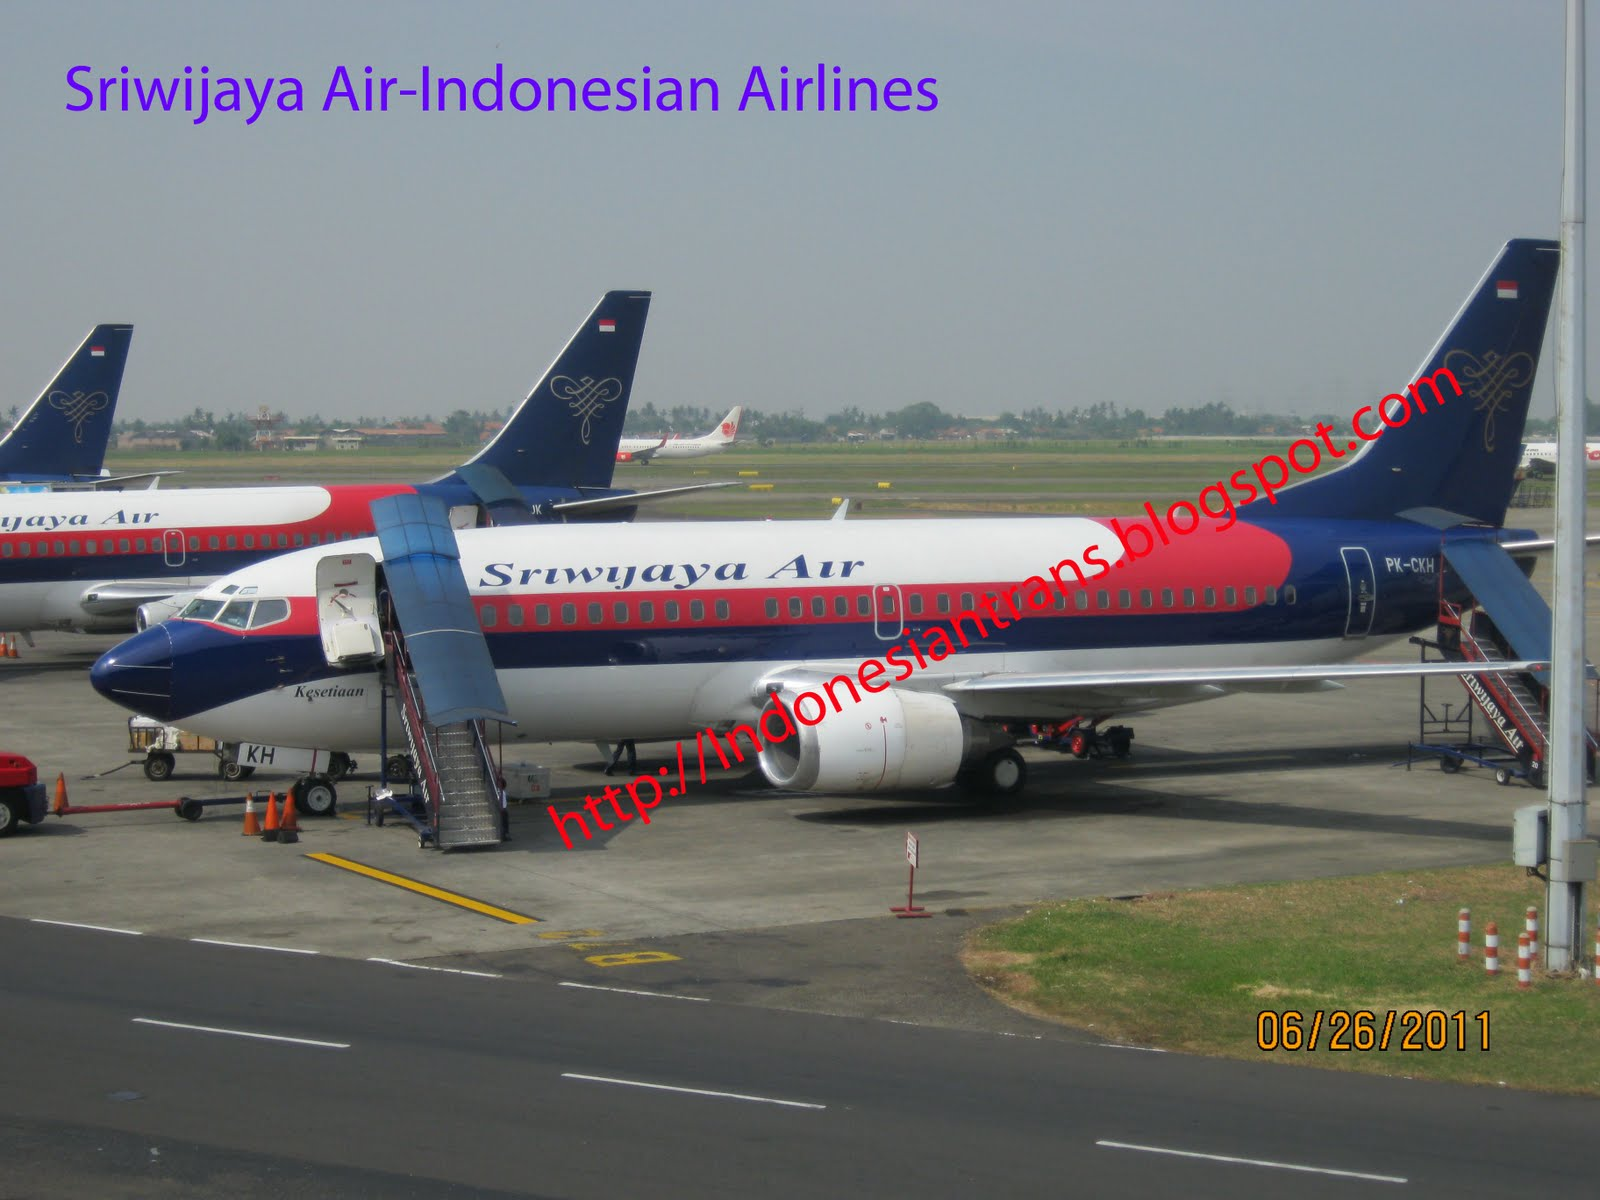 Airlines: routes map of Sriwijaya Air